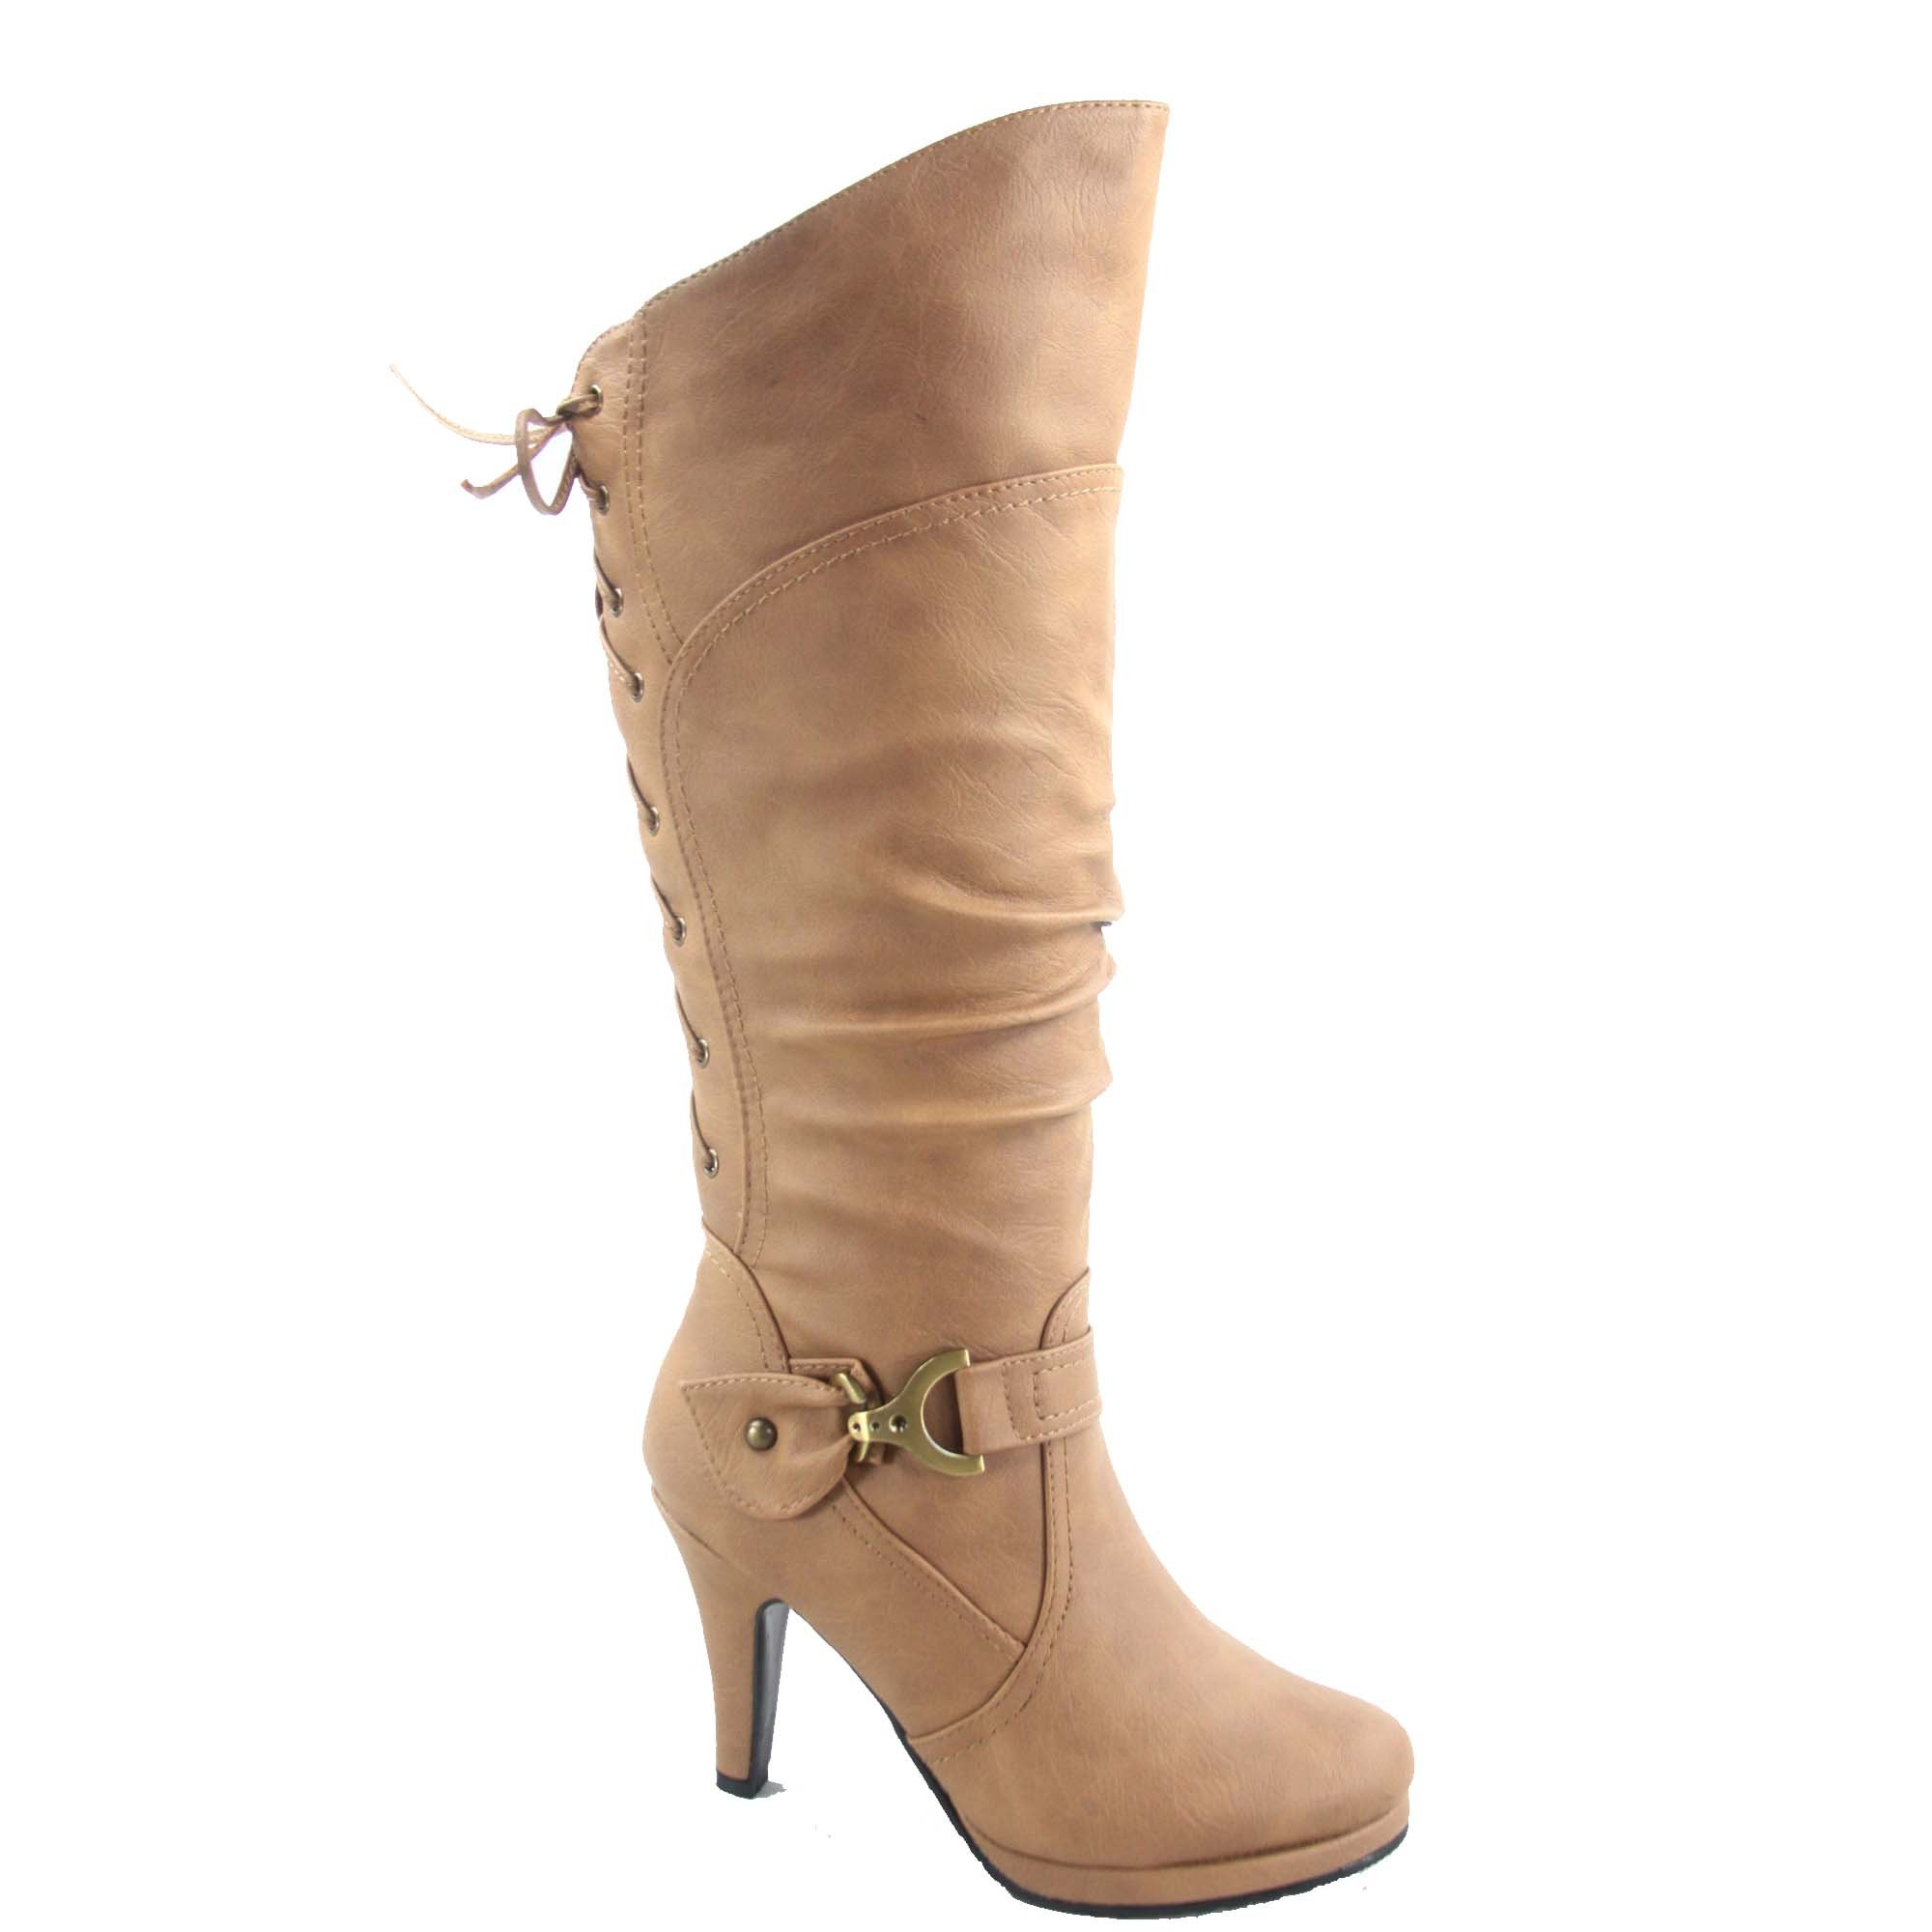 Top Moda Page-65 Women's Sexy Back Lace up Side Zipper Low Heel Platform Knee High Boots Shoes (6, Taupe)